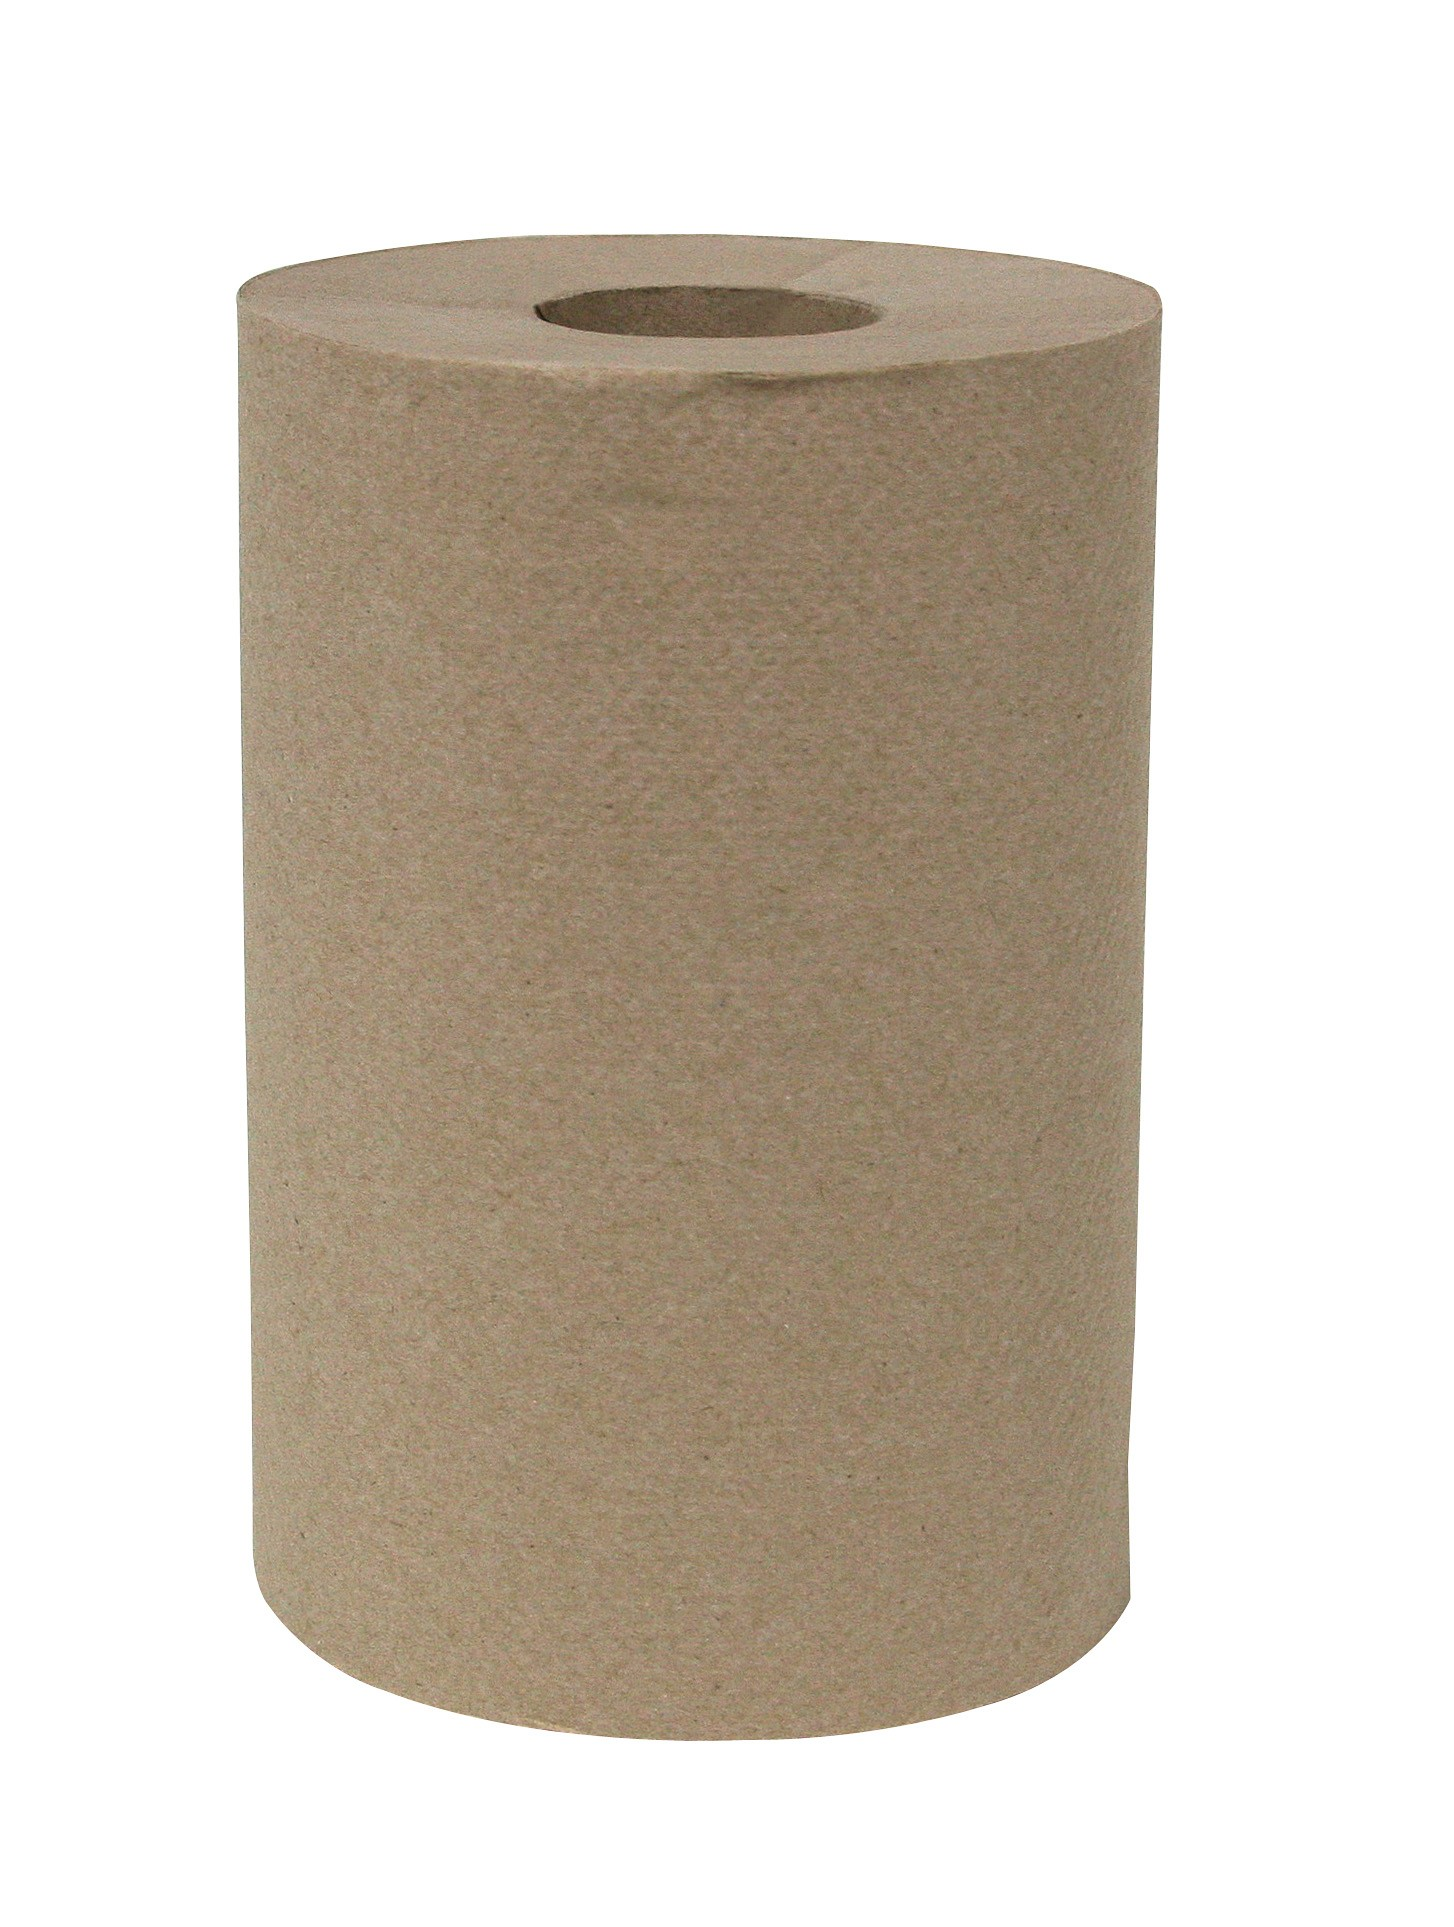 Roll Towel Natural  12/1 cs